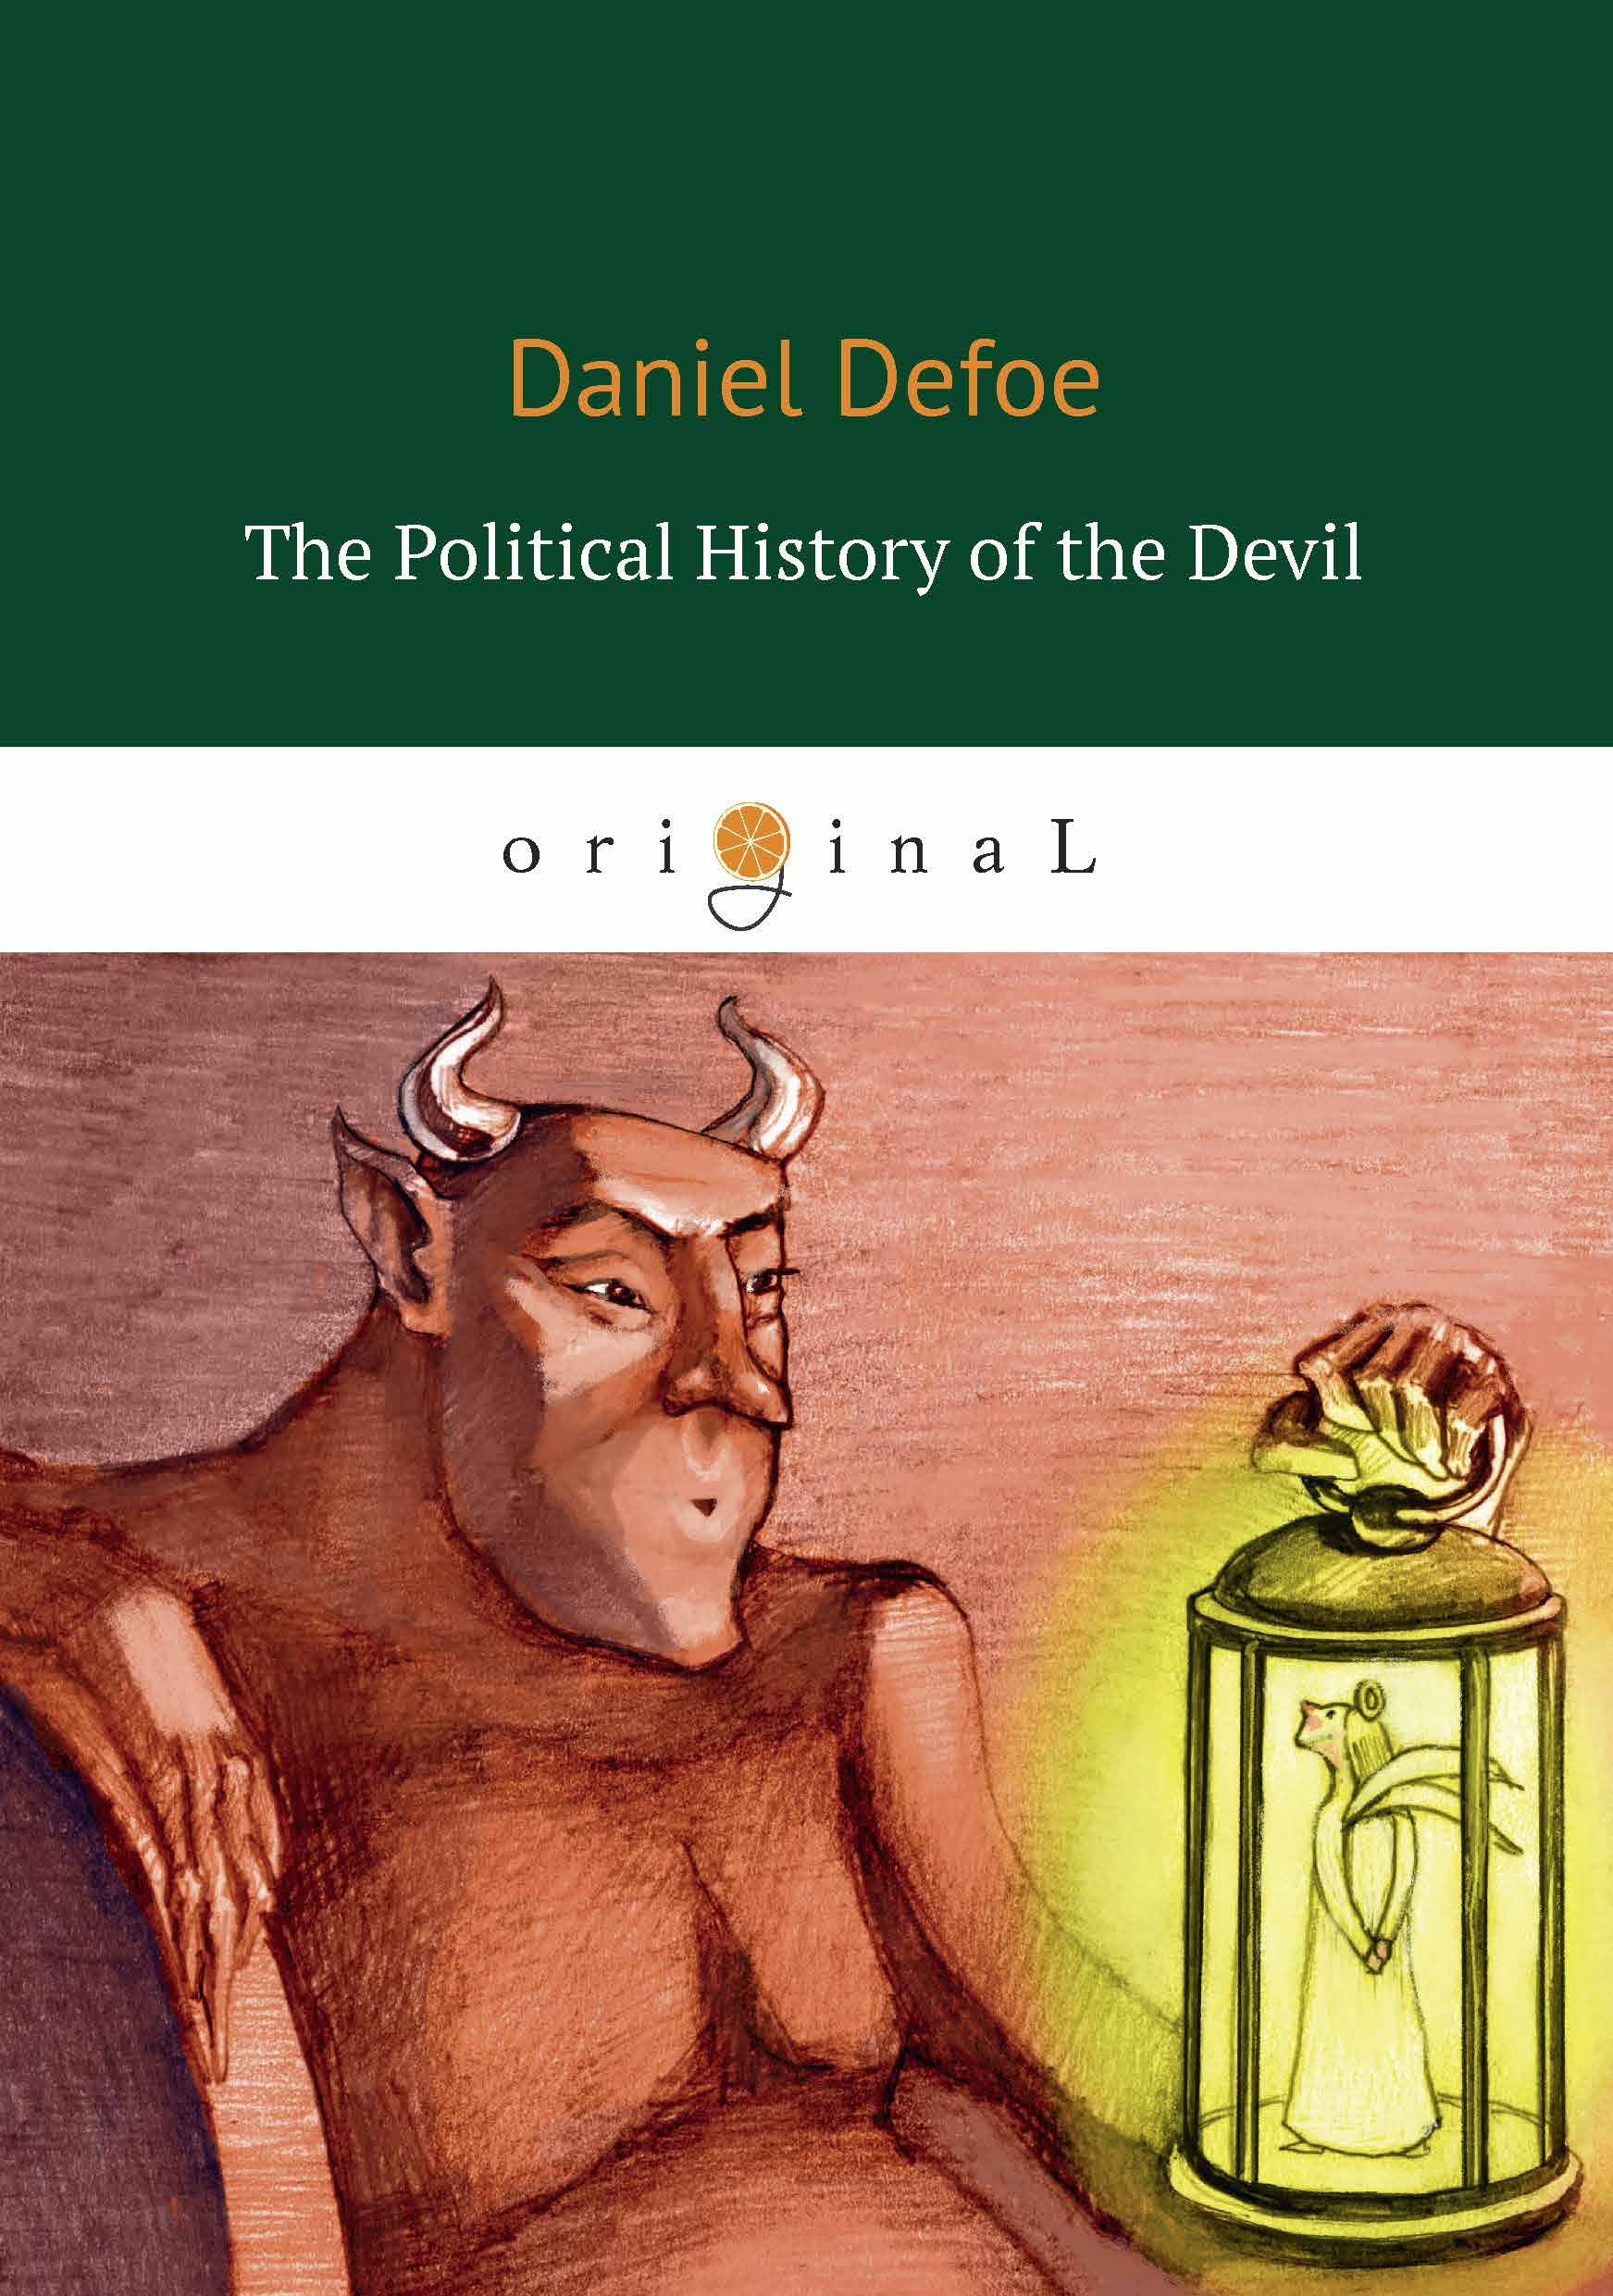 Daniel Defoe The Political History of the Devil daniel defoe the political history of the devil